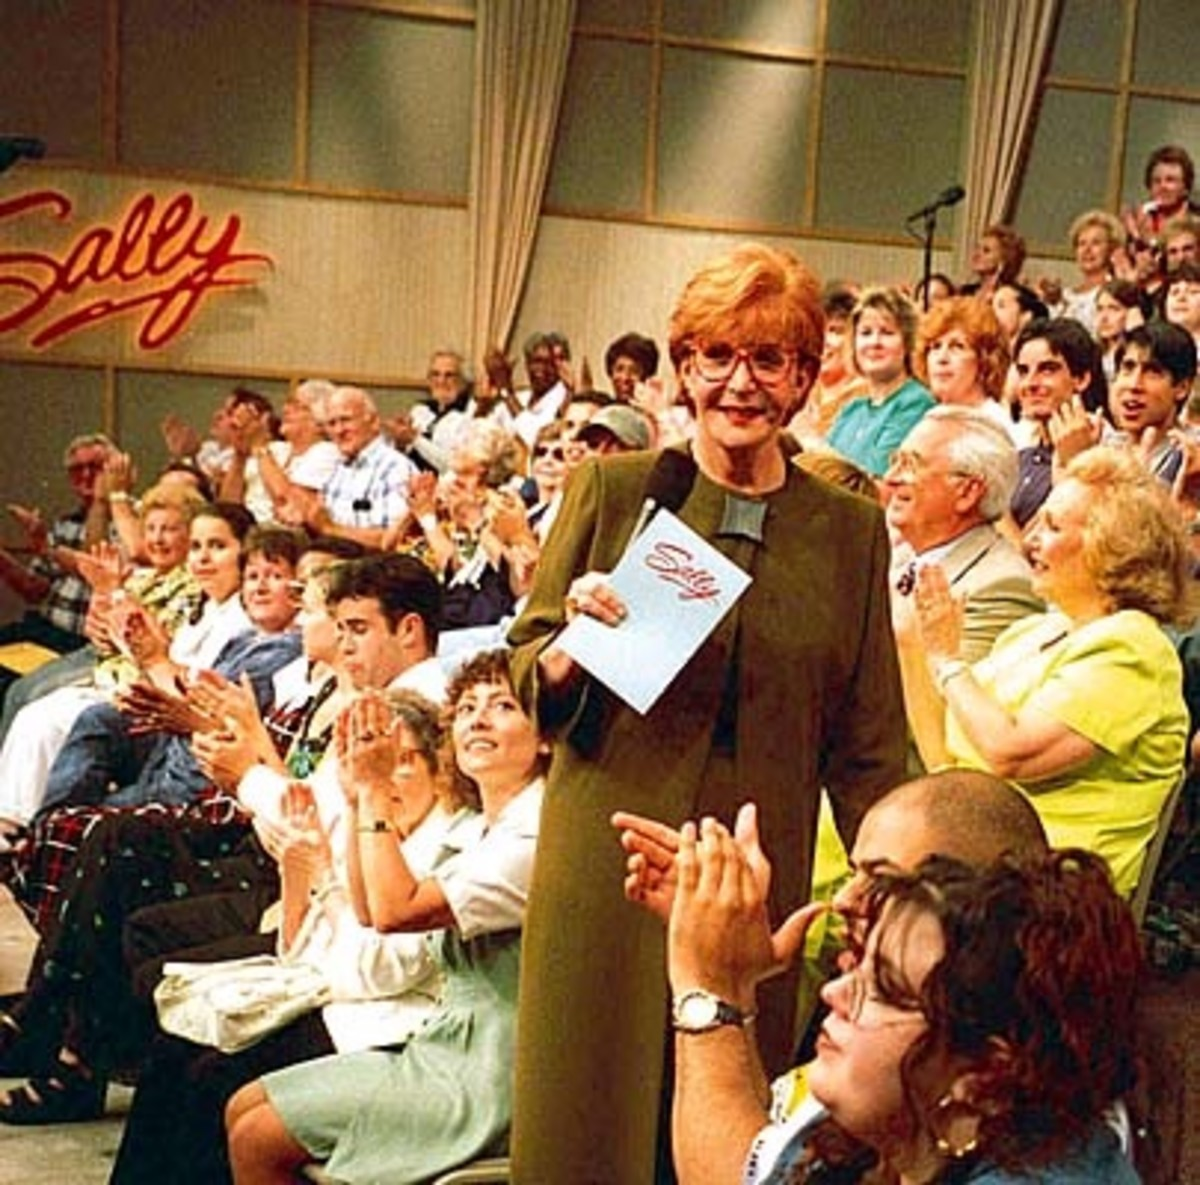 Sally Jessy Raphael Photo